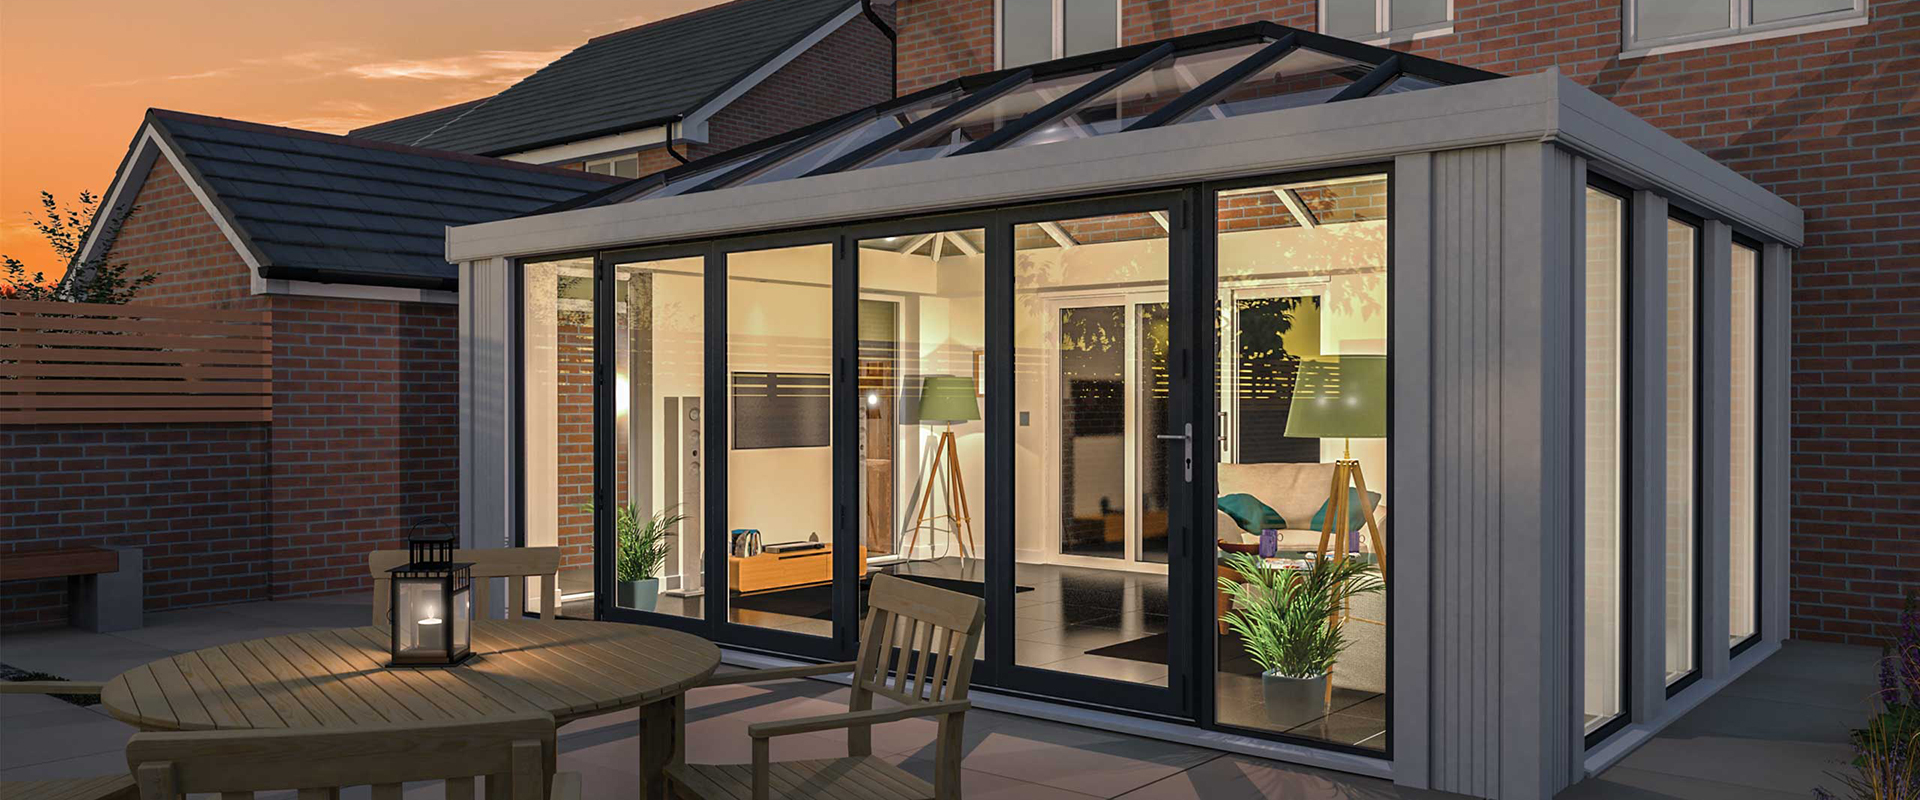 Conservatories Conservatory Orangery By Crown